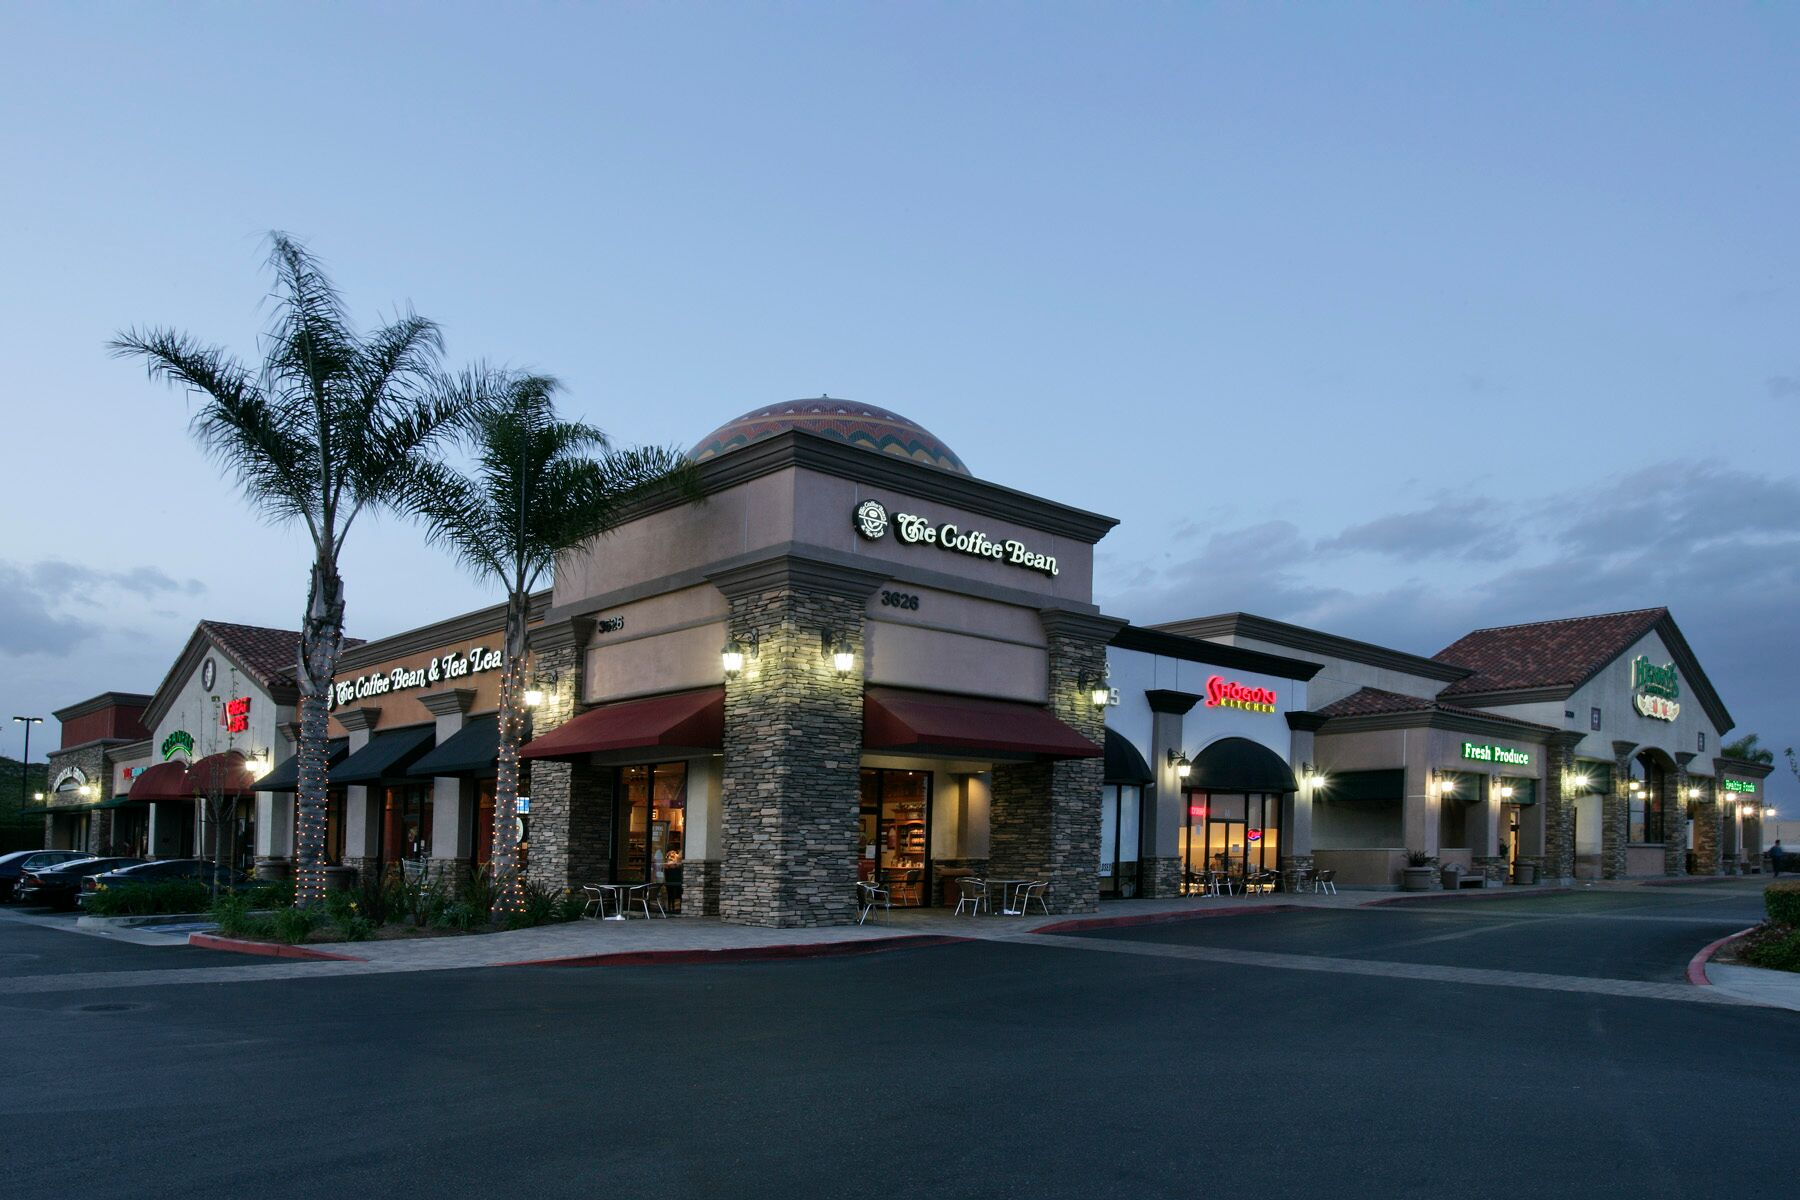 Gateway Village, Chino, CA